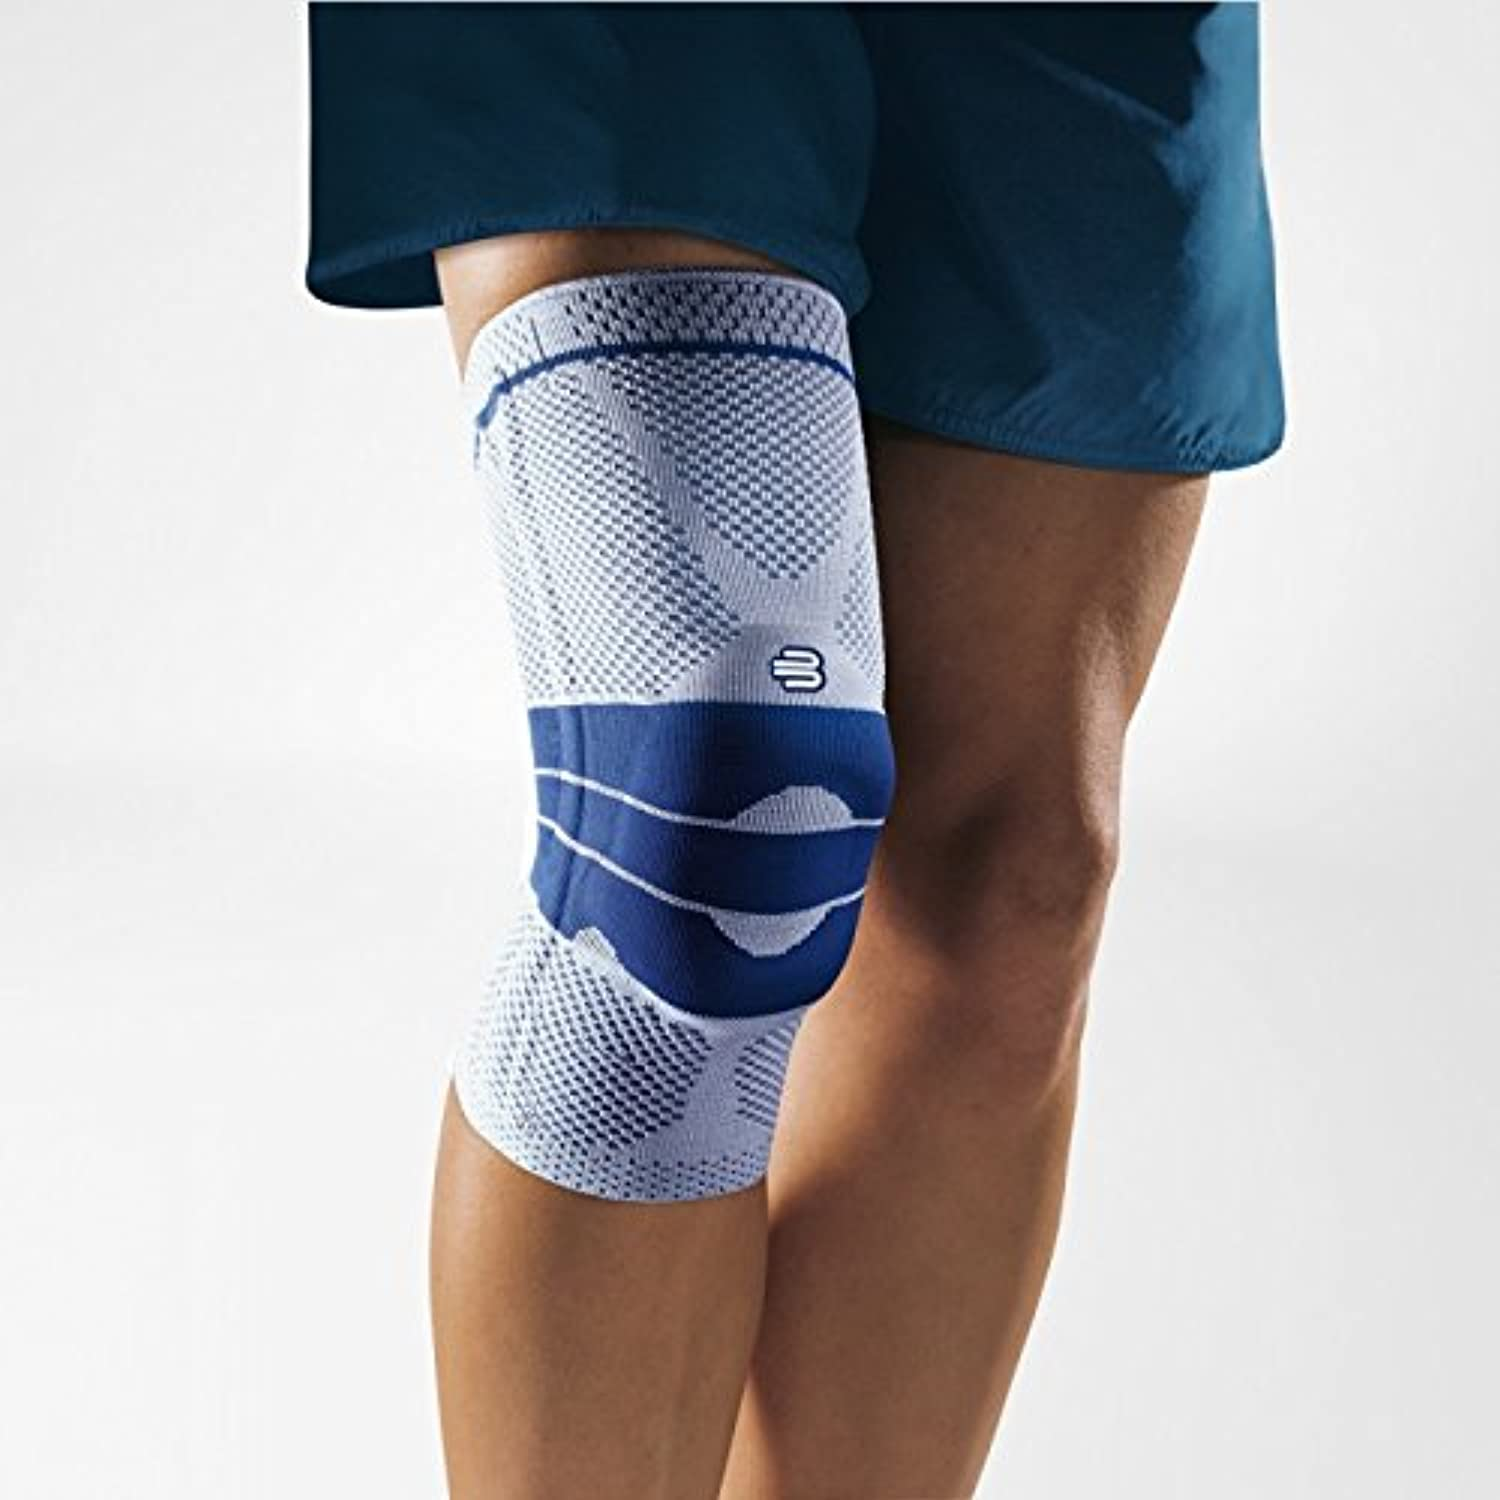 Bauerfeind  GenuTrain  Knee Support  Targeted Support for Pain Relief and Stabilization of The Knee, Provides Relief of Weak, Swollen, and Injured Knees